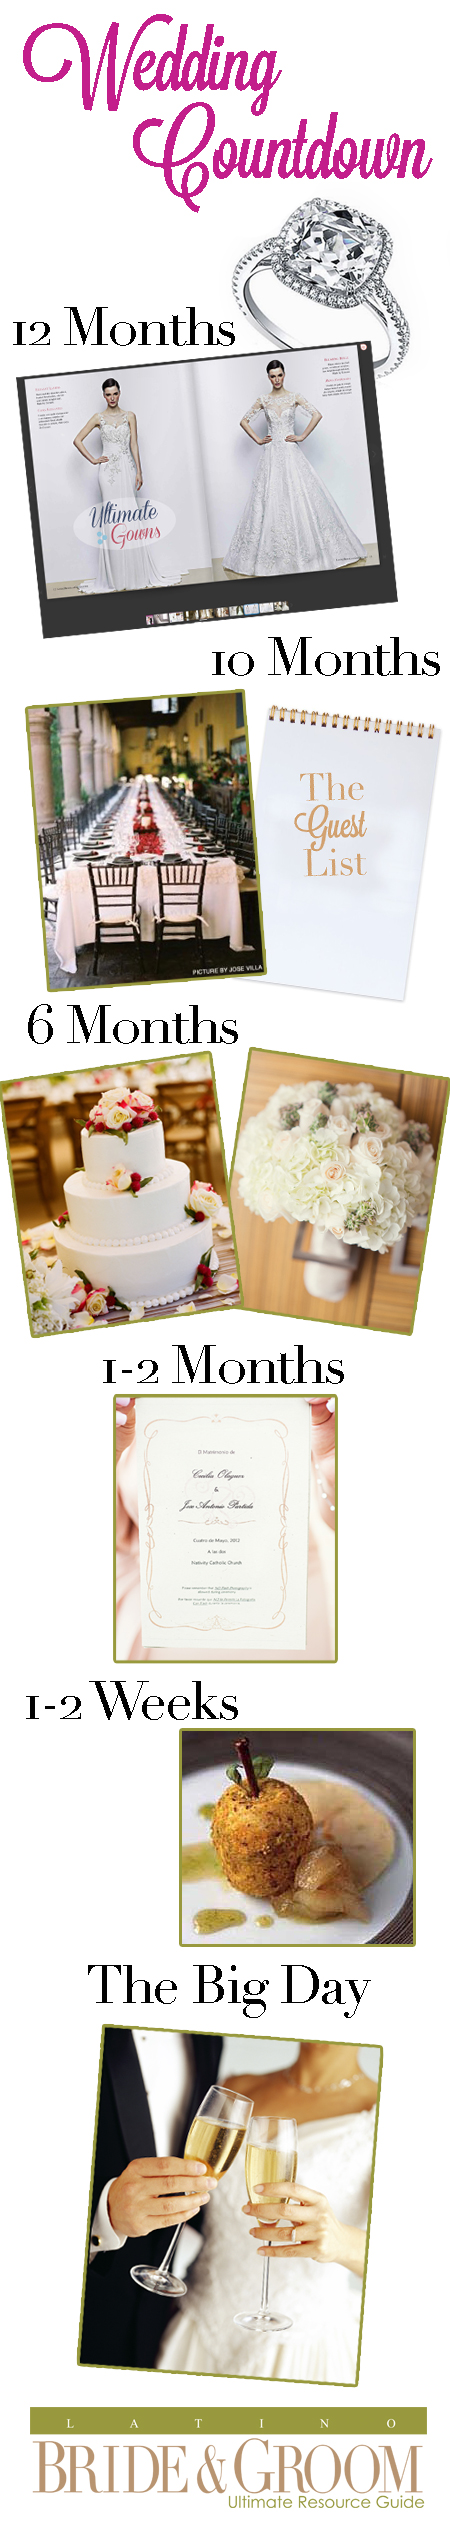 latino-bride-and-groom-12-month-wedding-countdown